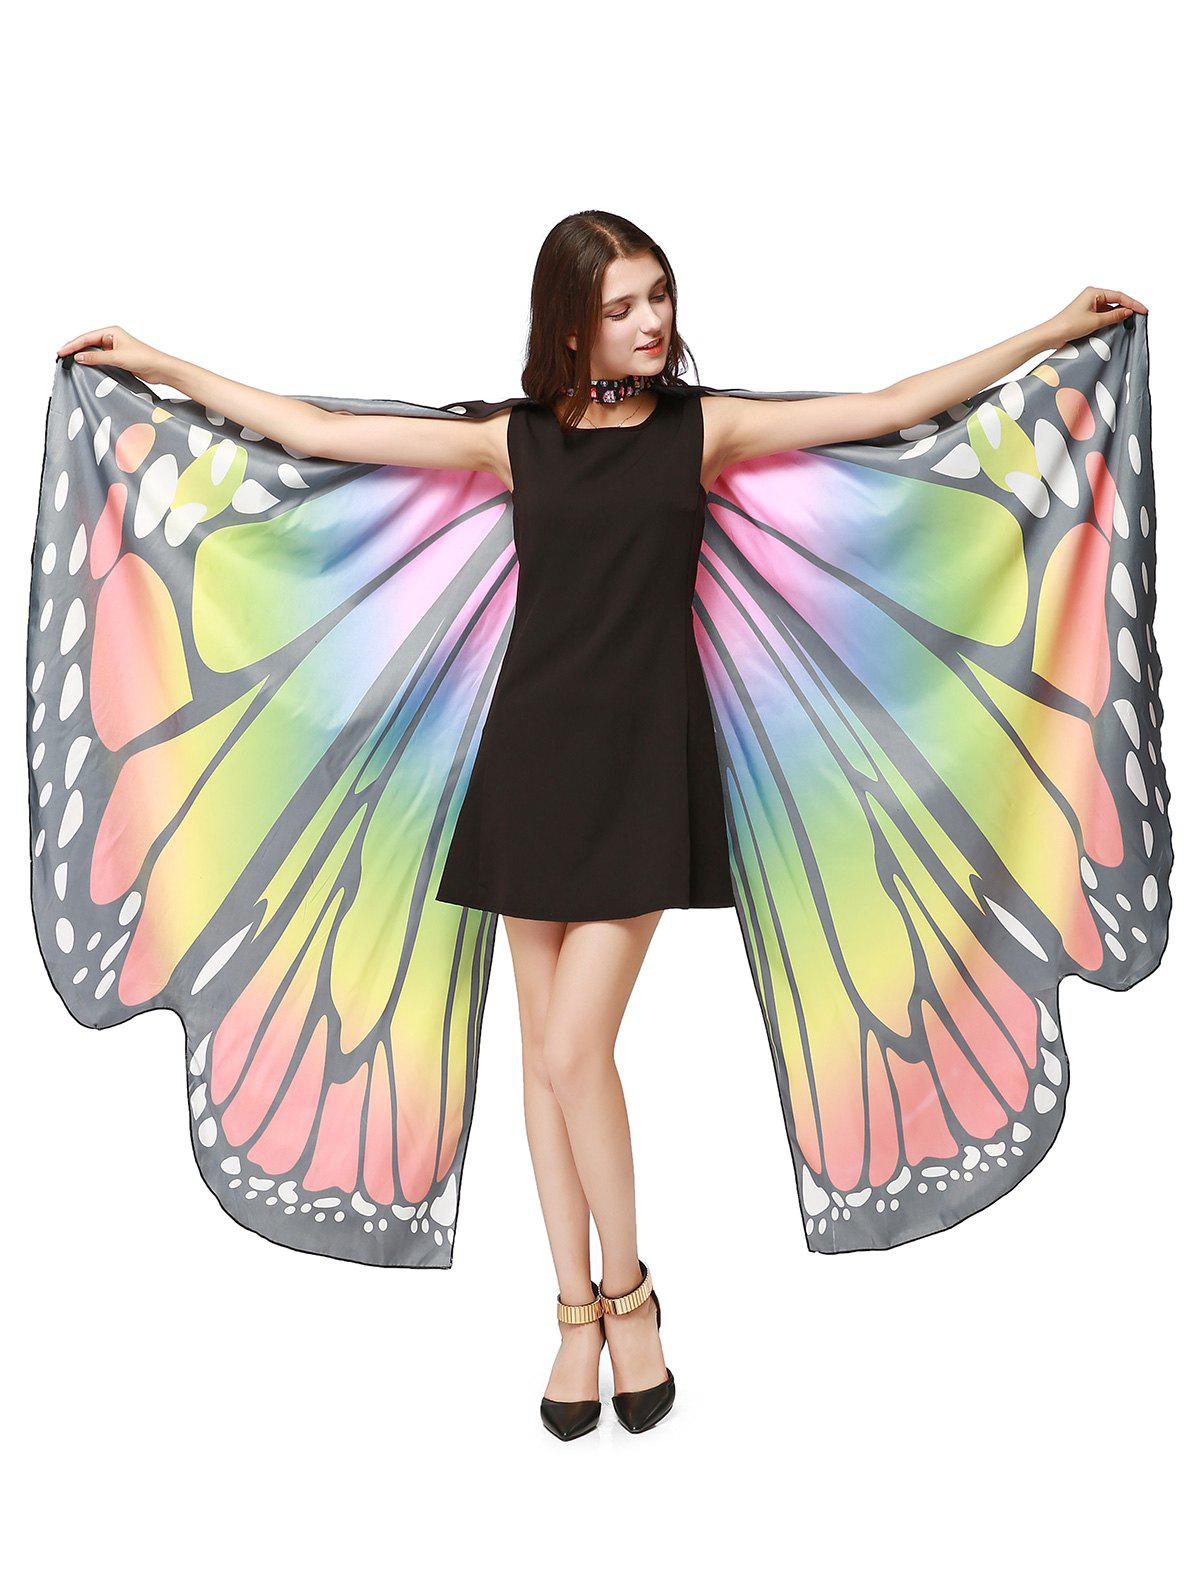 Oversize Chiffon Butterfly Wing Design Strap CapeACCESSORIES<br><br>Color: COLORFUL; Scarf Type: Shawl/Wrap; Group: Adult; Gender: For Women; Style: Fashion; Pattern Type: Animal; Season: Fall,Spring,Summer,Winter; Scarf Length: 168CM; Scarf Width (CM): 135CM; Weight: 0.2000kg; Package Contents: 1 x Cape Scarf;